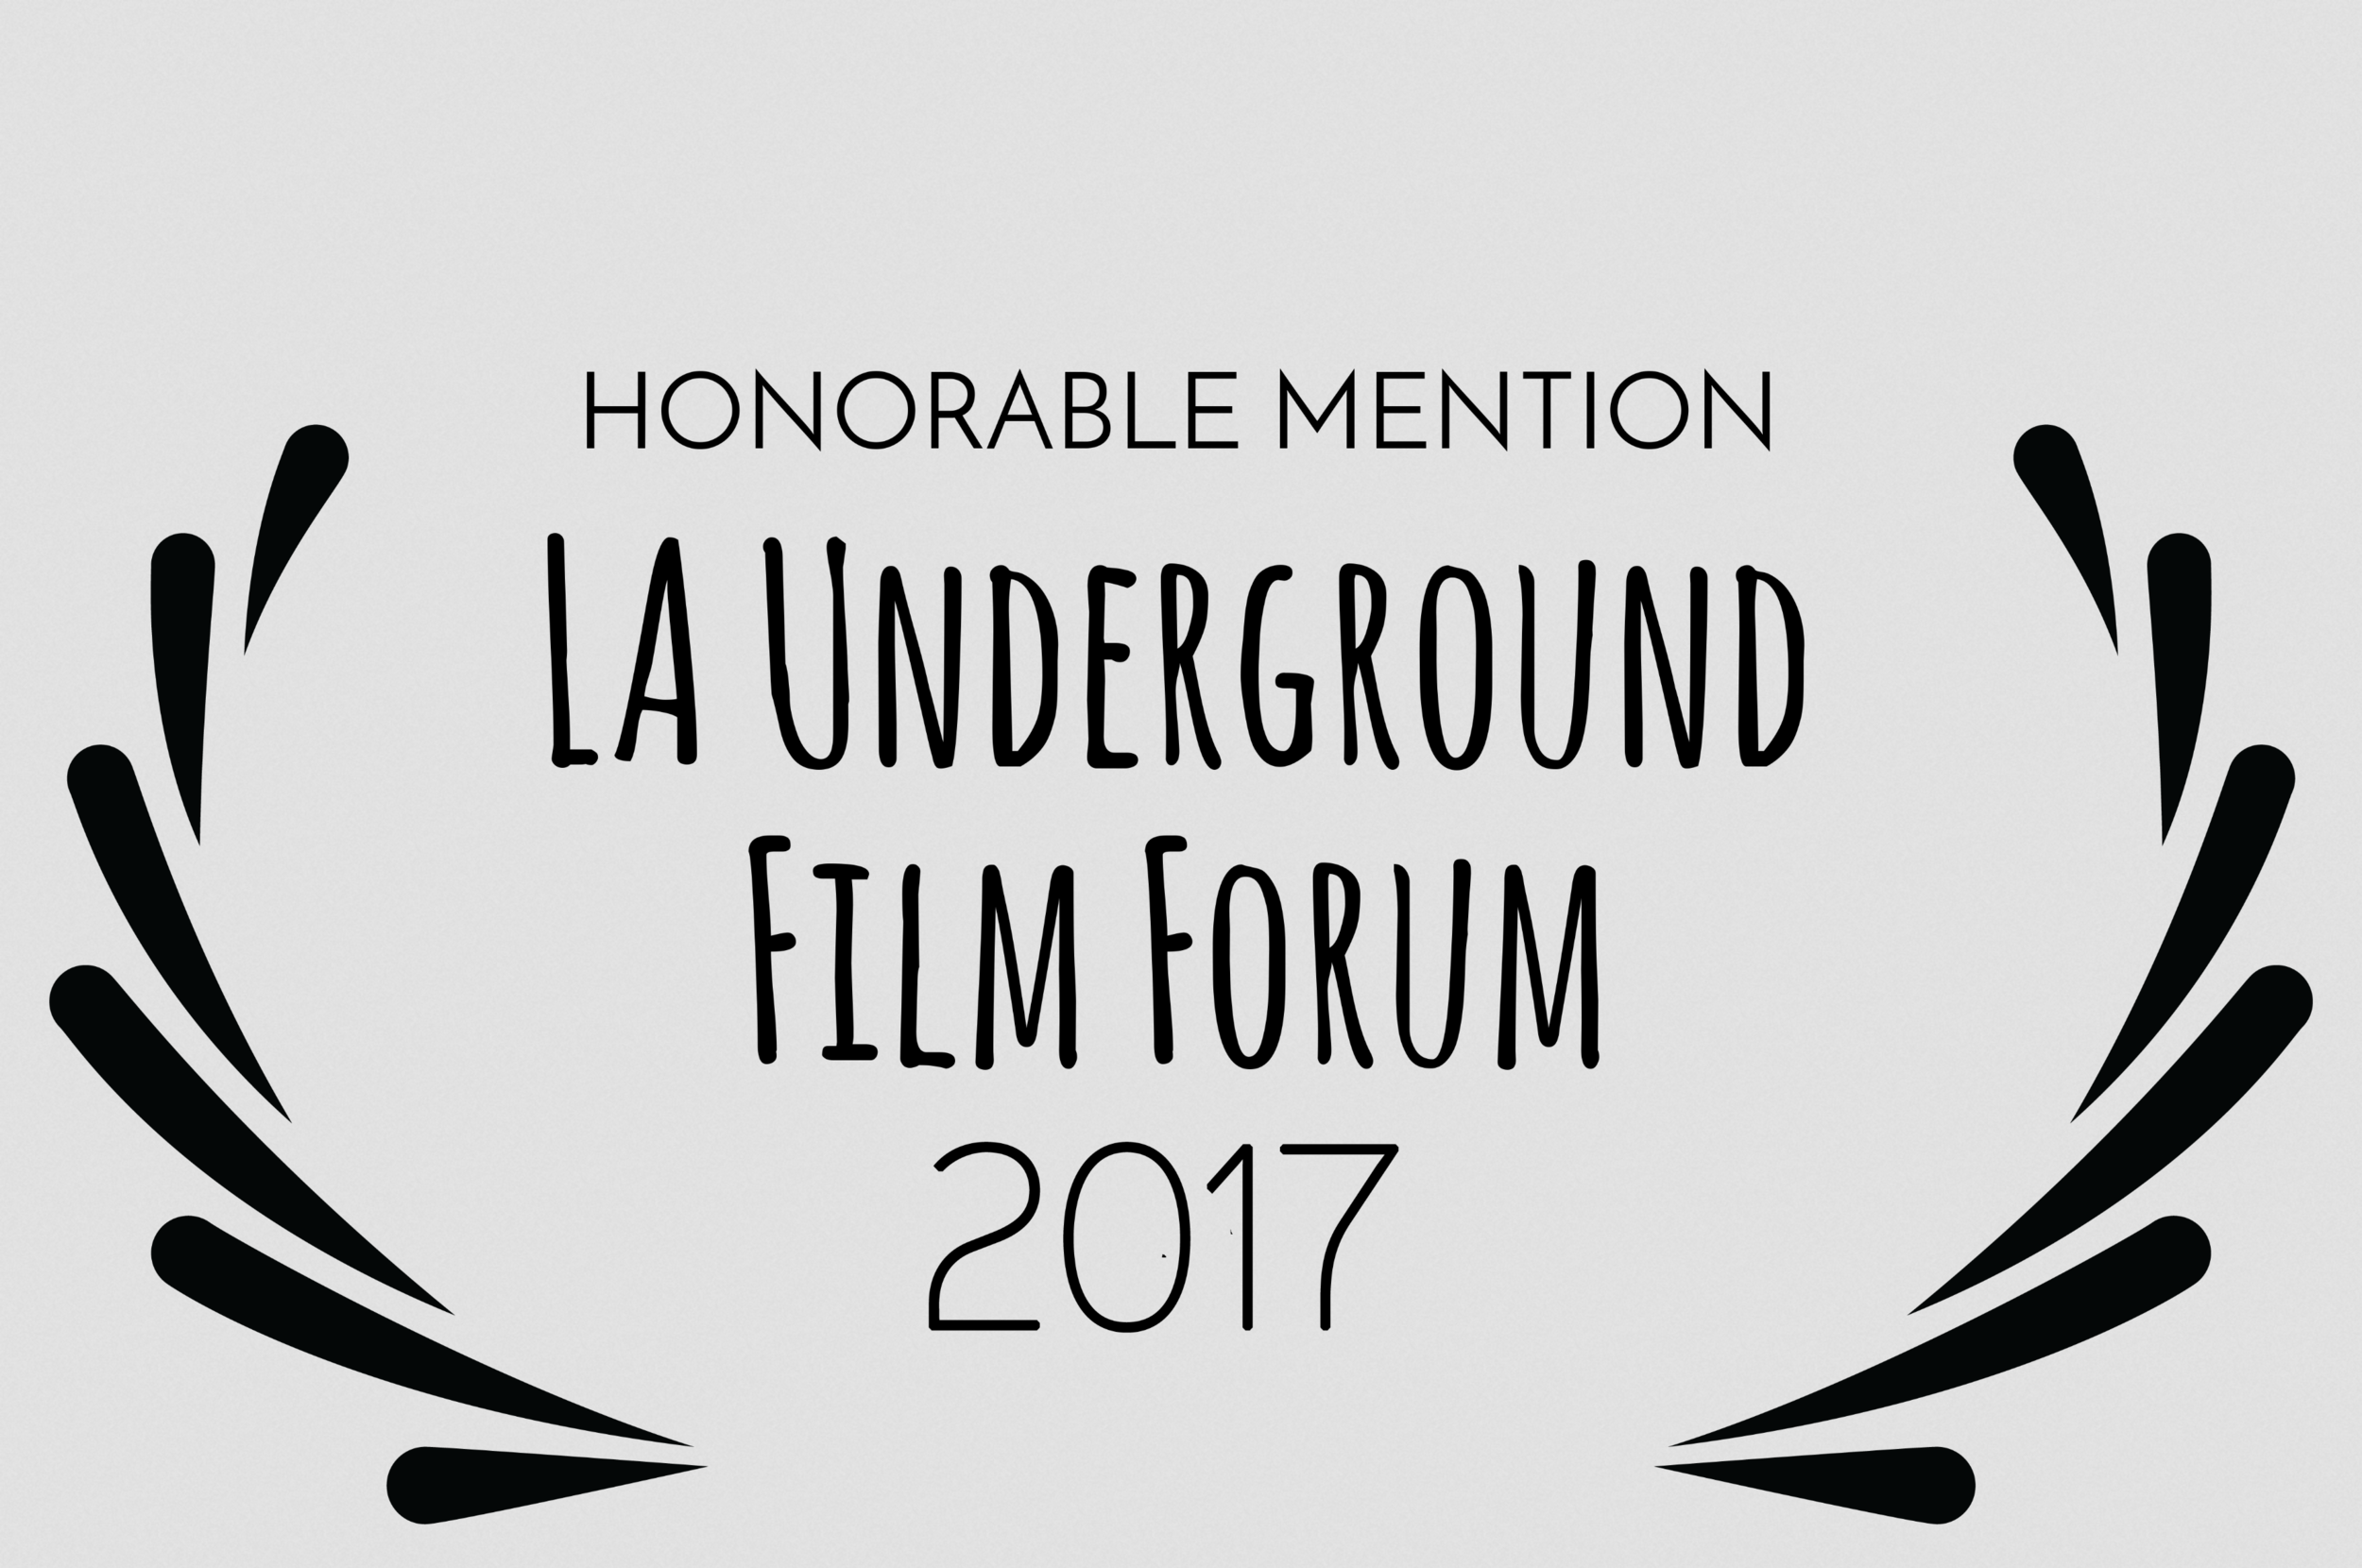 The Land Within  receives an Honorable Mention from Los Angeles Underground Film Forum.